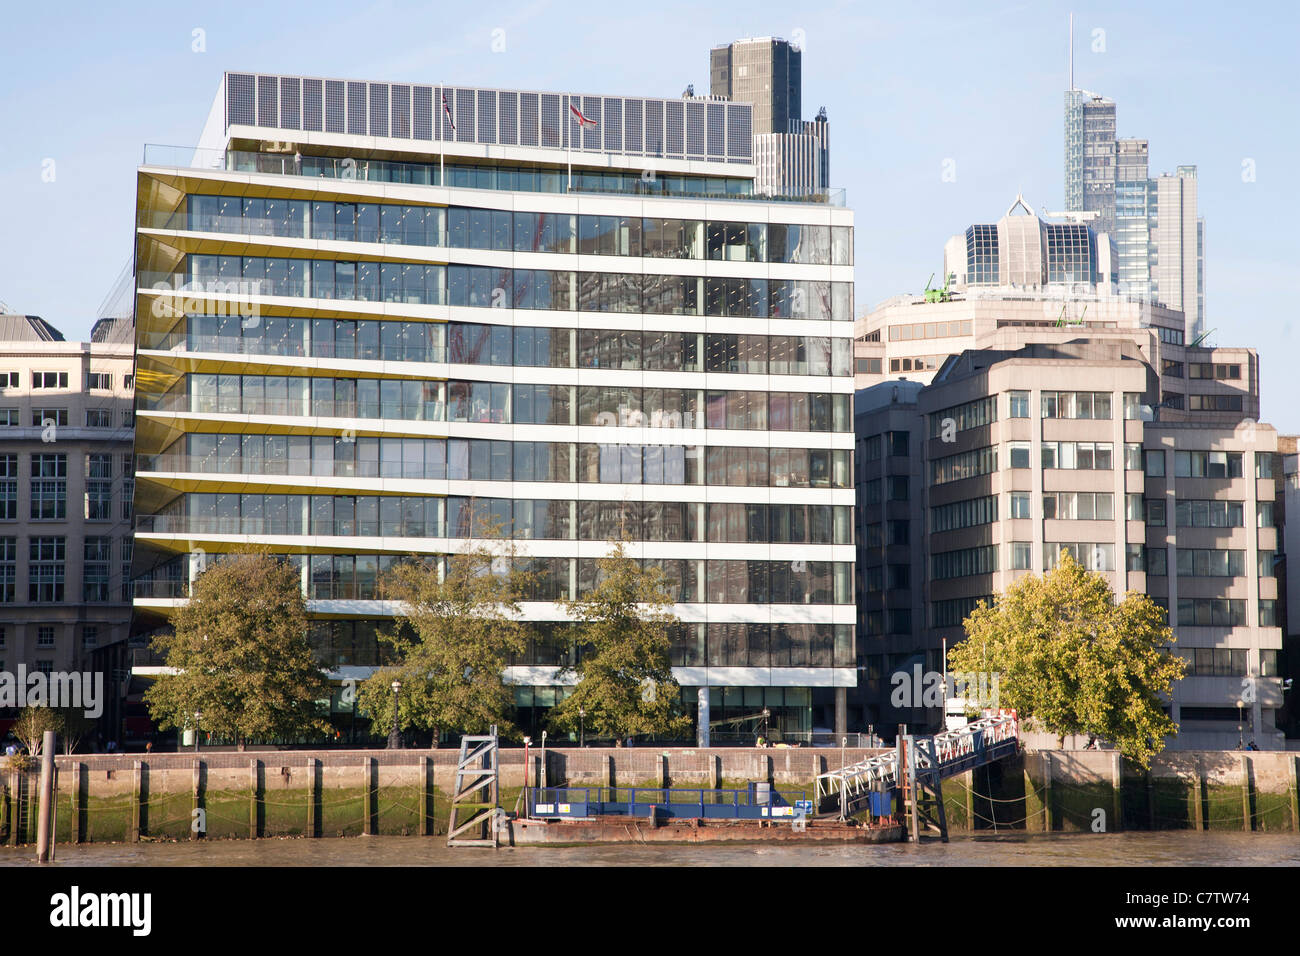 Riverbank House on the north bank of the river Thames in London near Cannon Street, David Walker Architects. - Stock Image